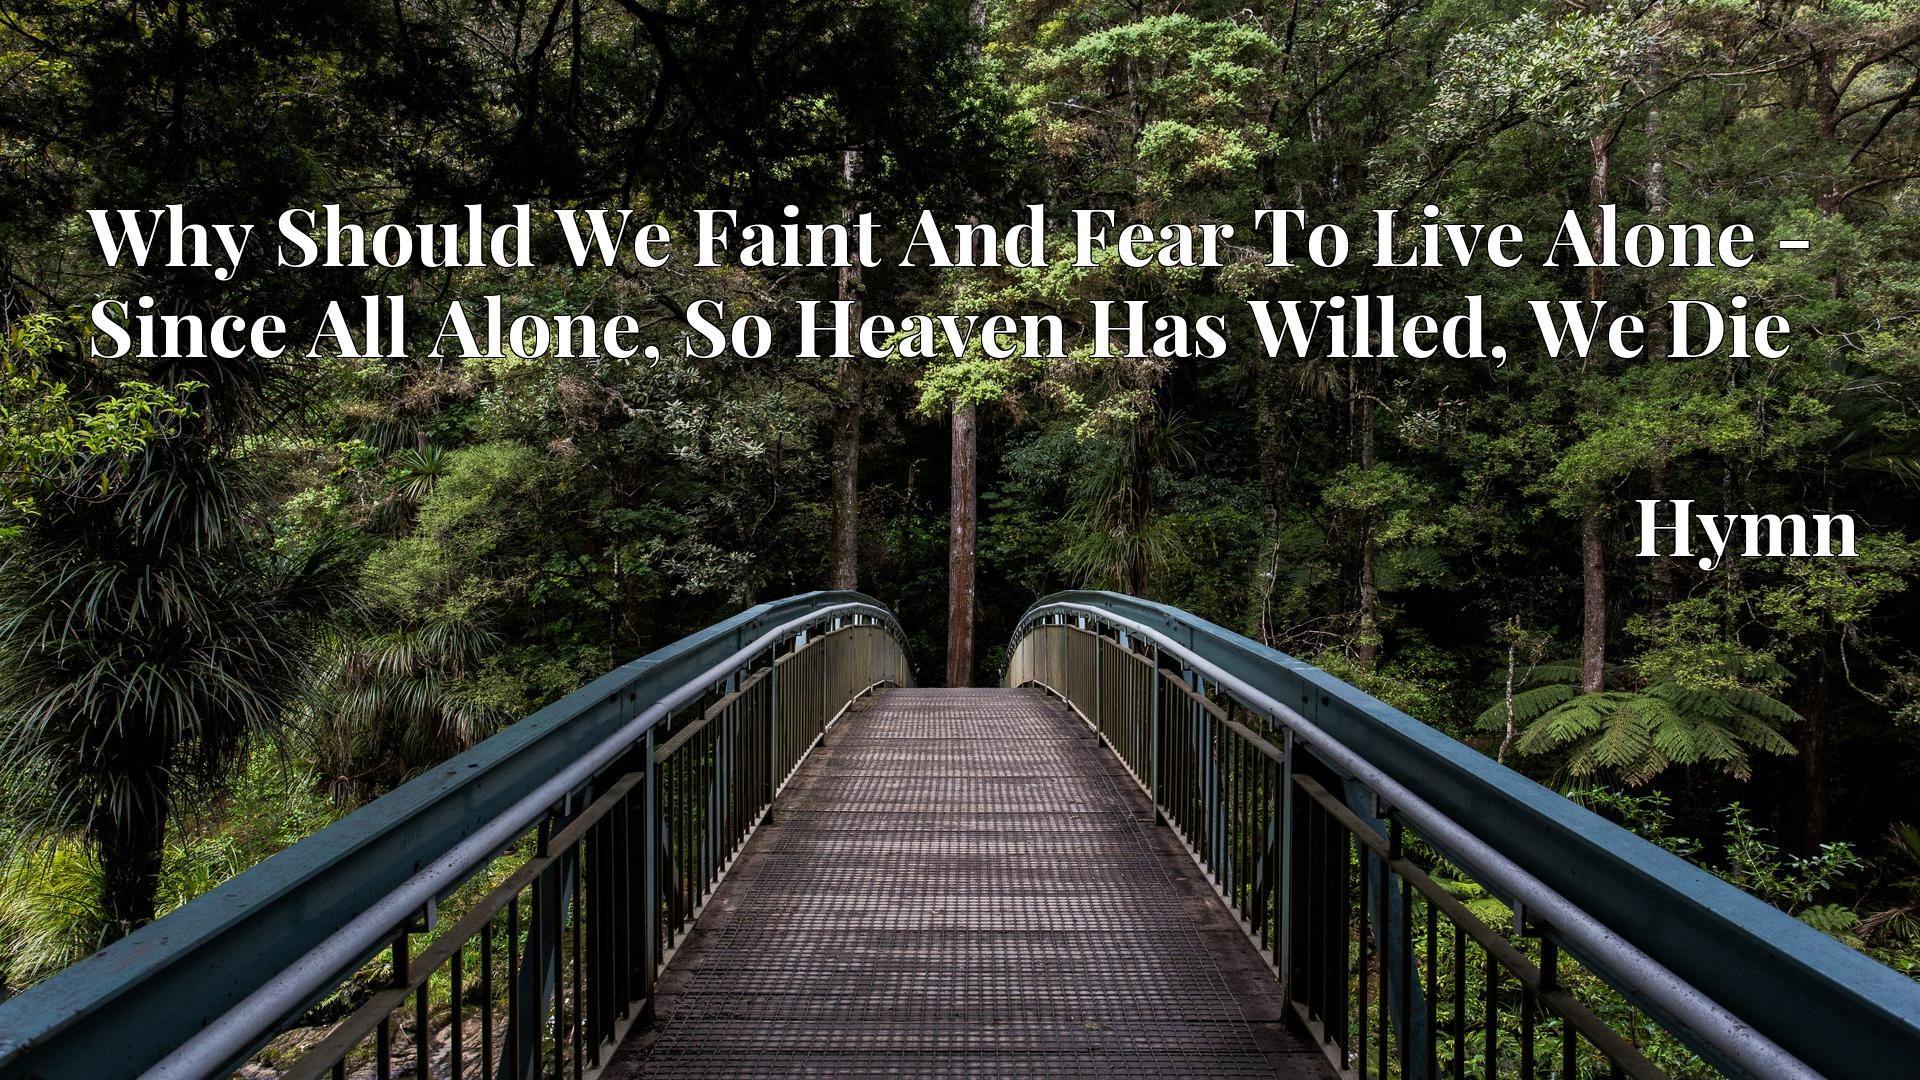 Why Should We Faint And Fear To Live Alone - Since All Alone, So Heaven Has Willed, We Die - Hymn